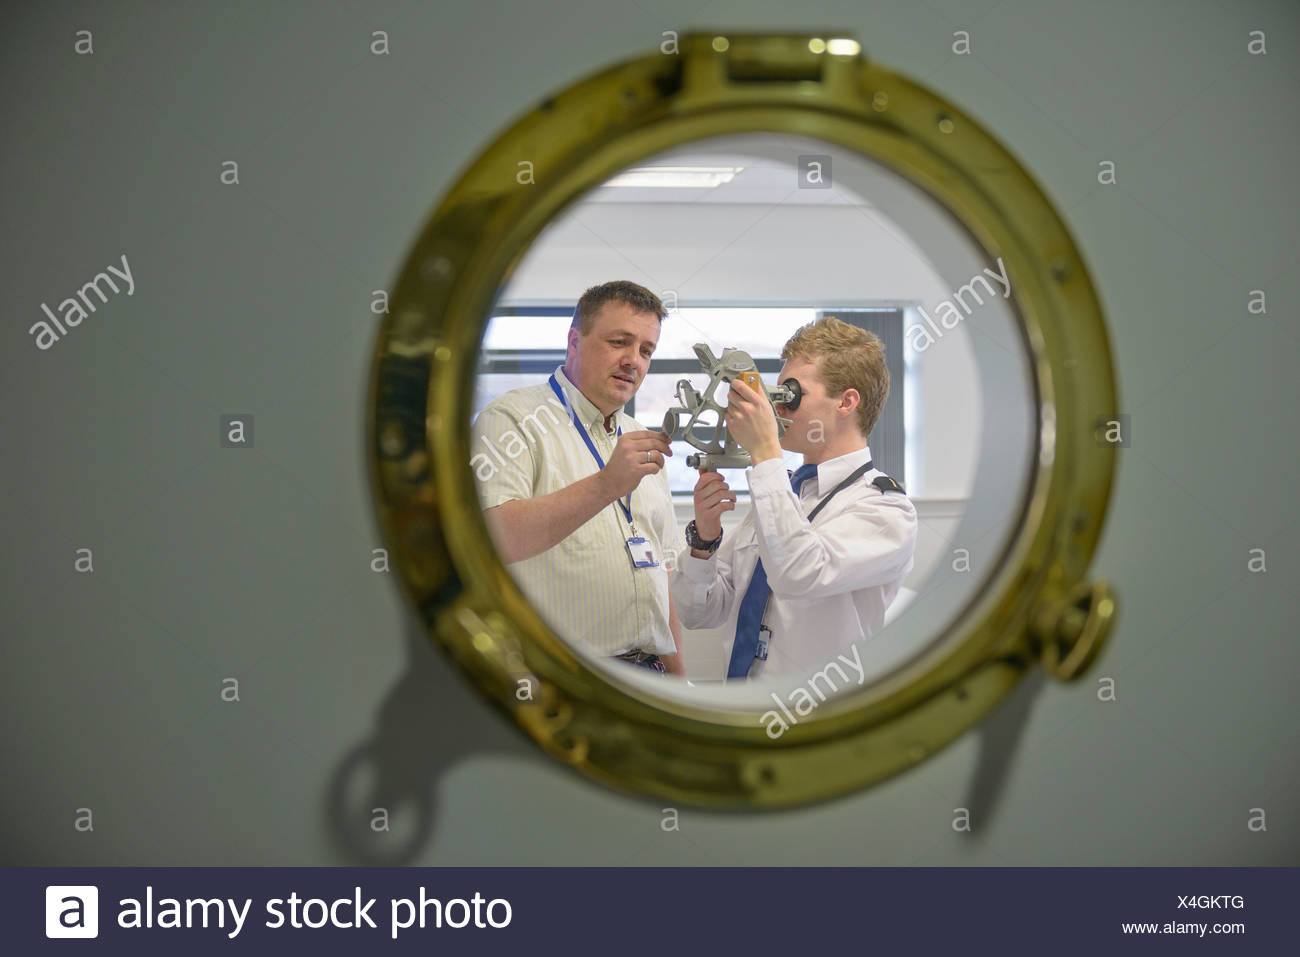 Student and teacher using sextant - Stock Image